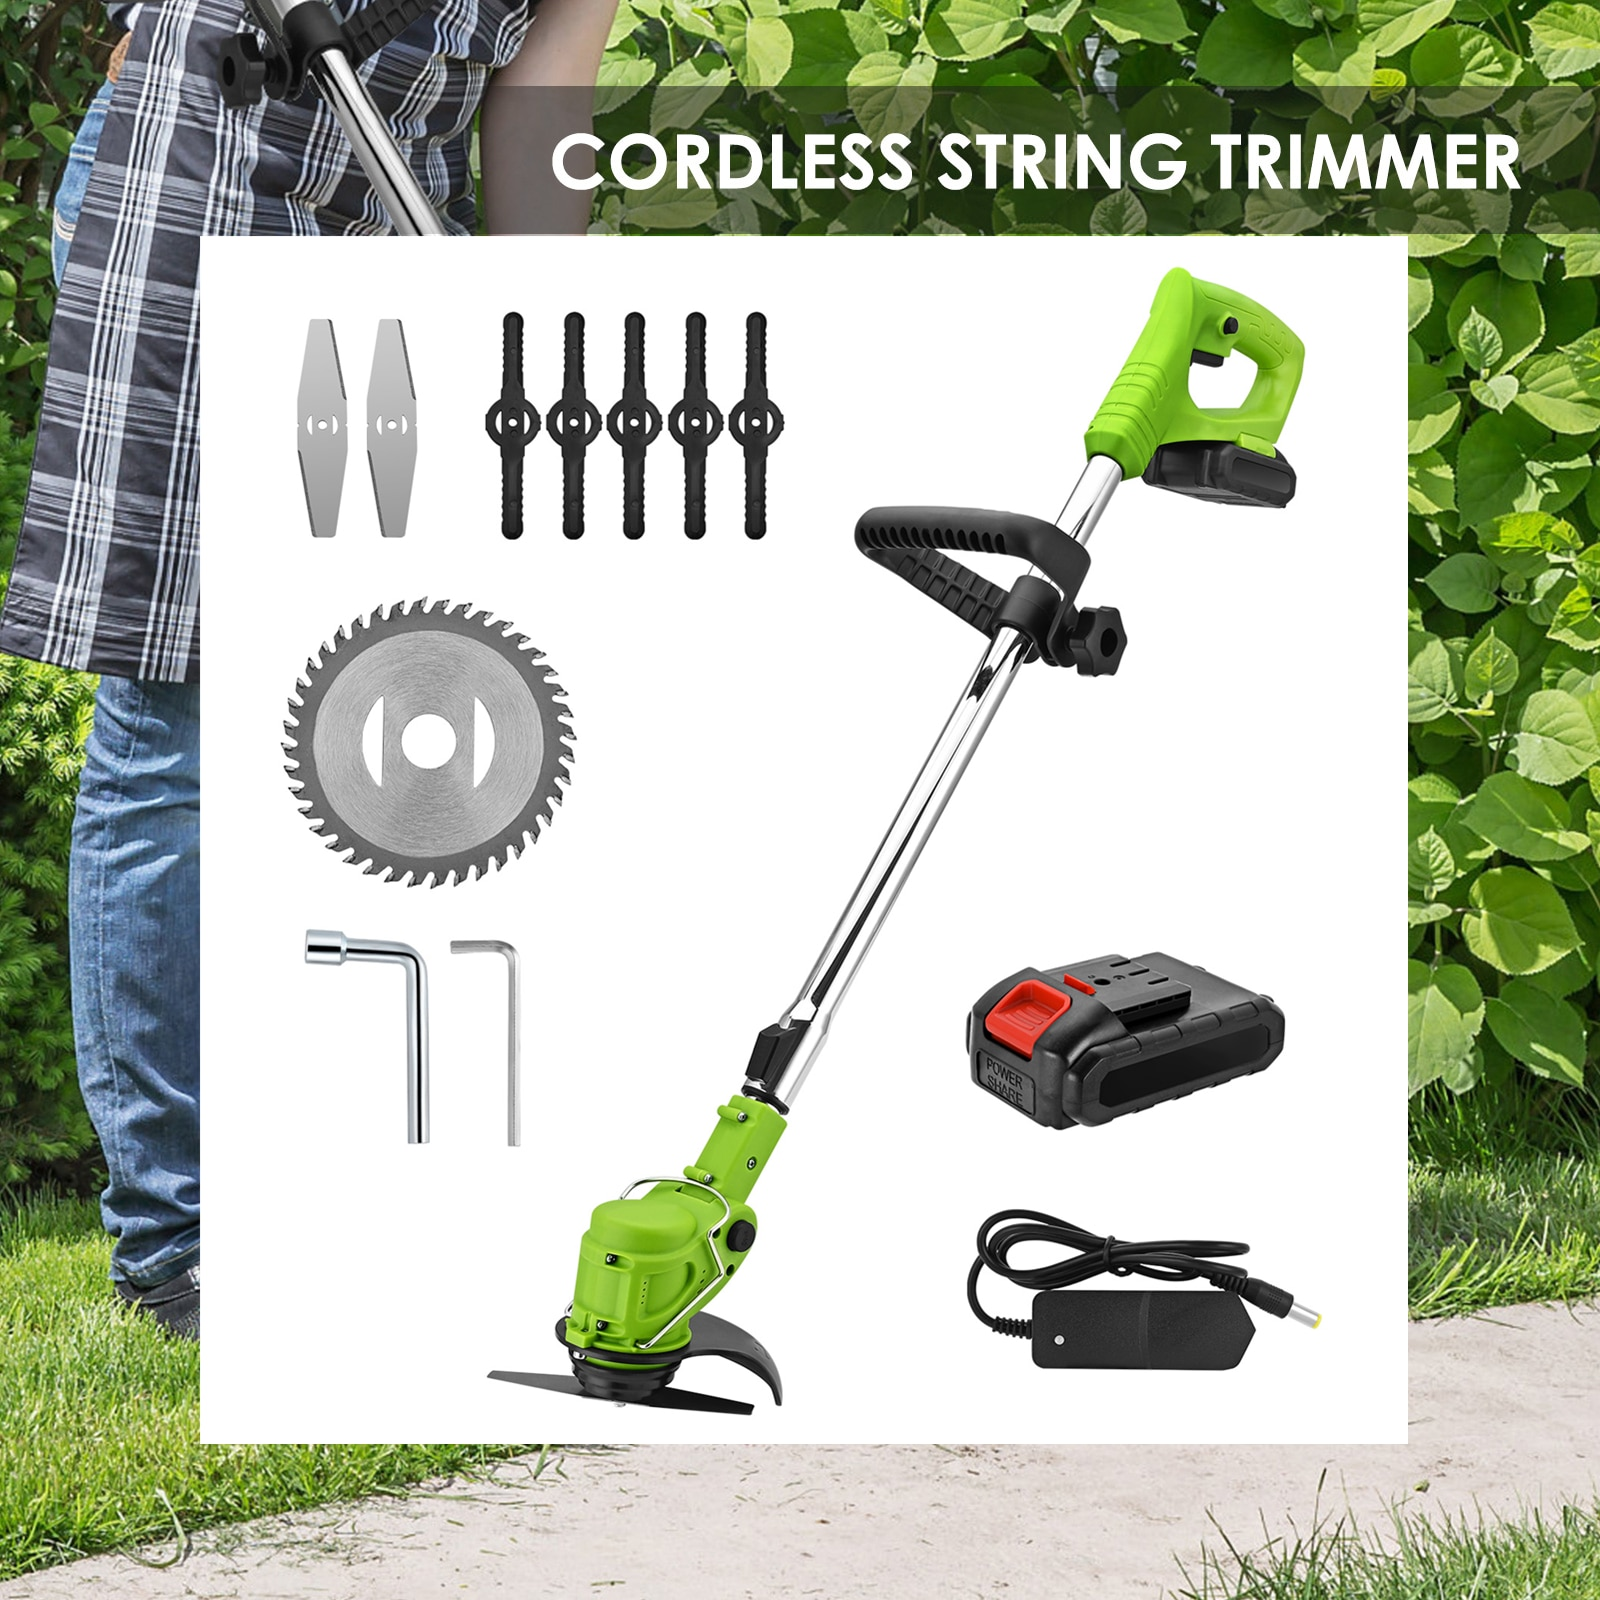 24V Cordless Lawn Trimmer 2-in-1 Lawn Trimmer And Lawn Edger Mini Brush Cutter Lawn Mower Tool With Telescopic Rod